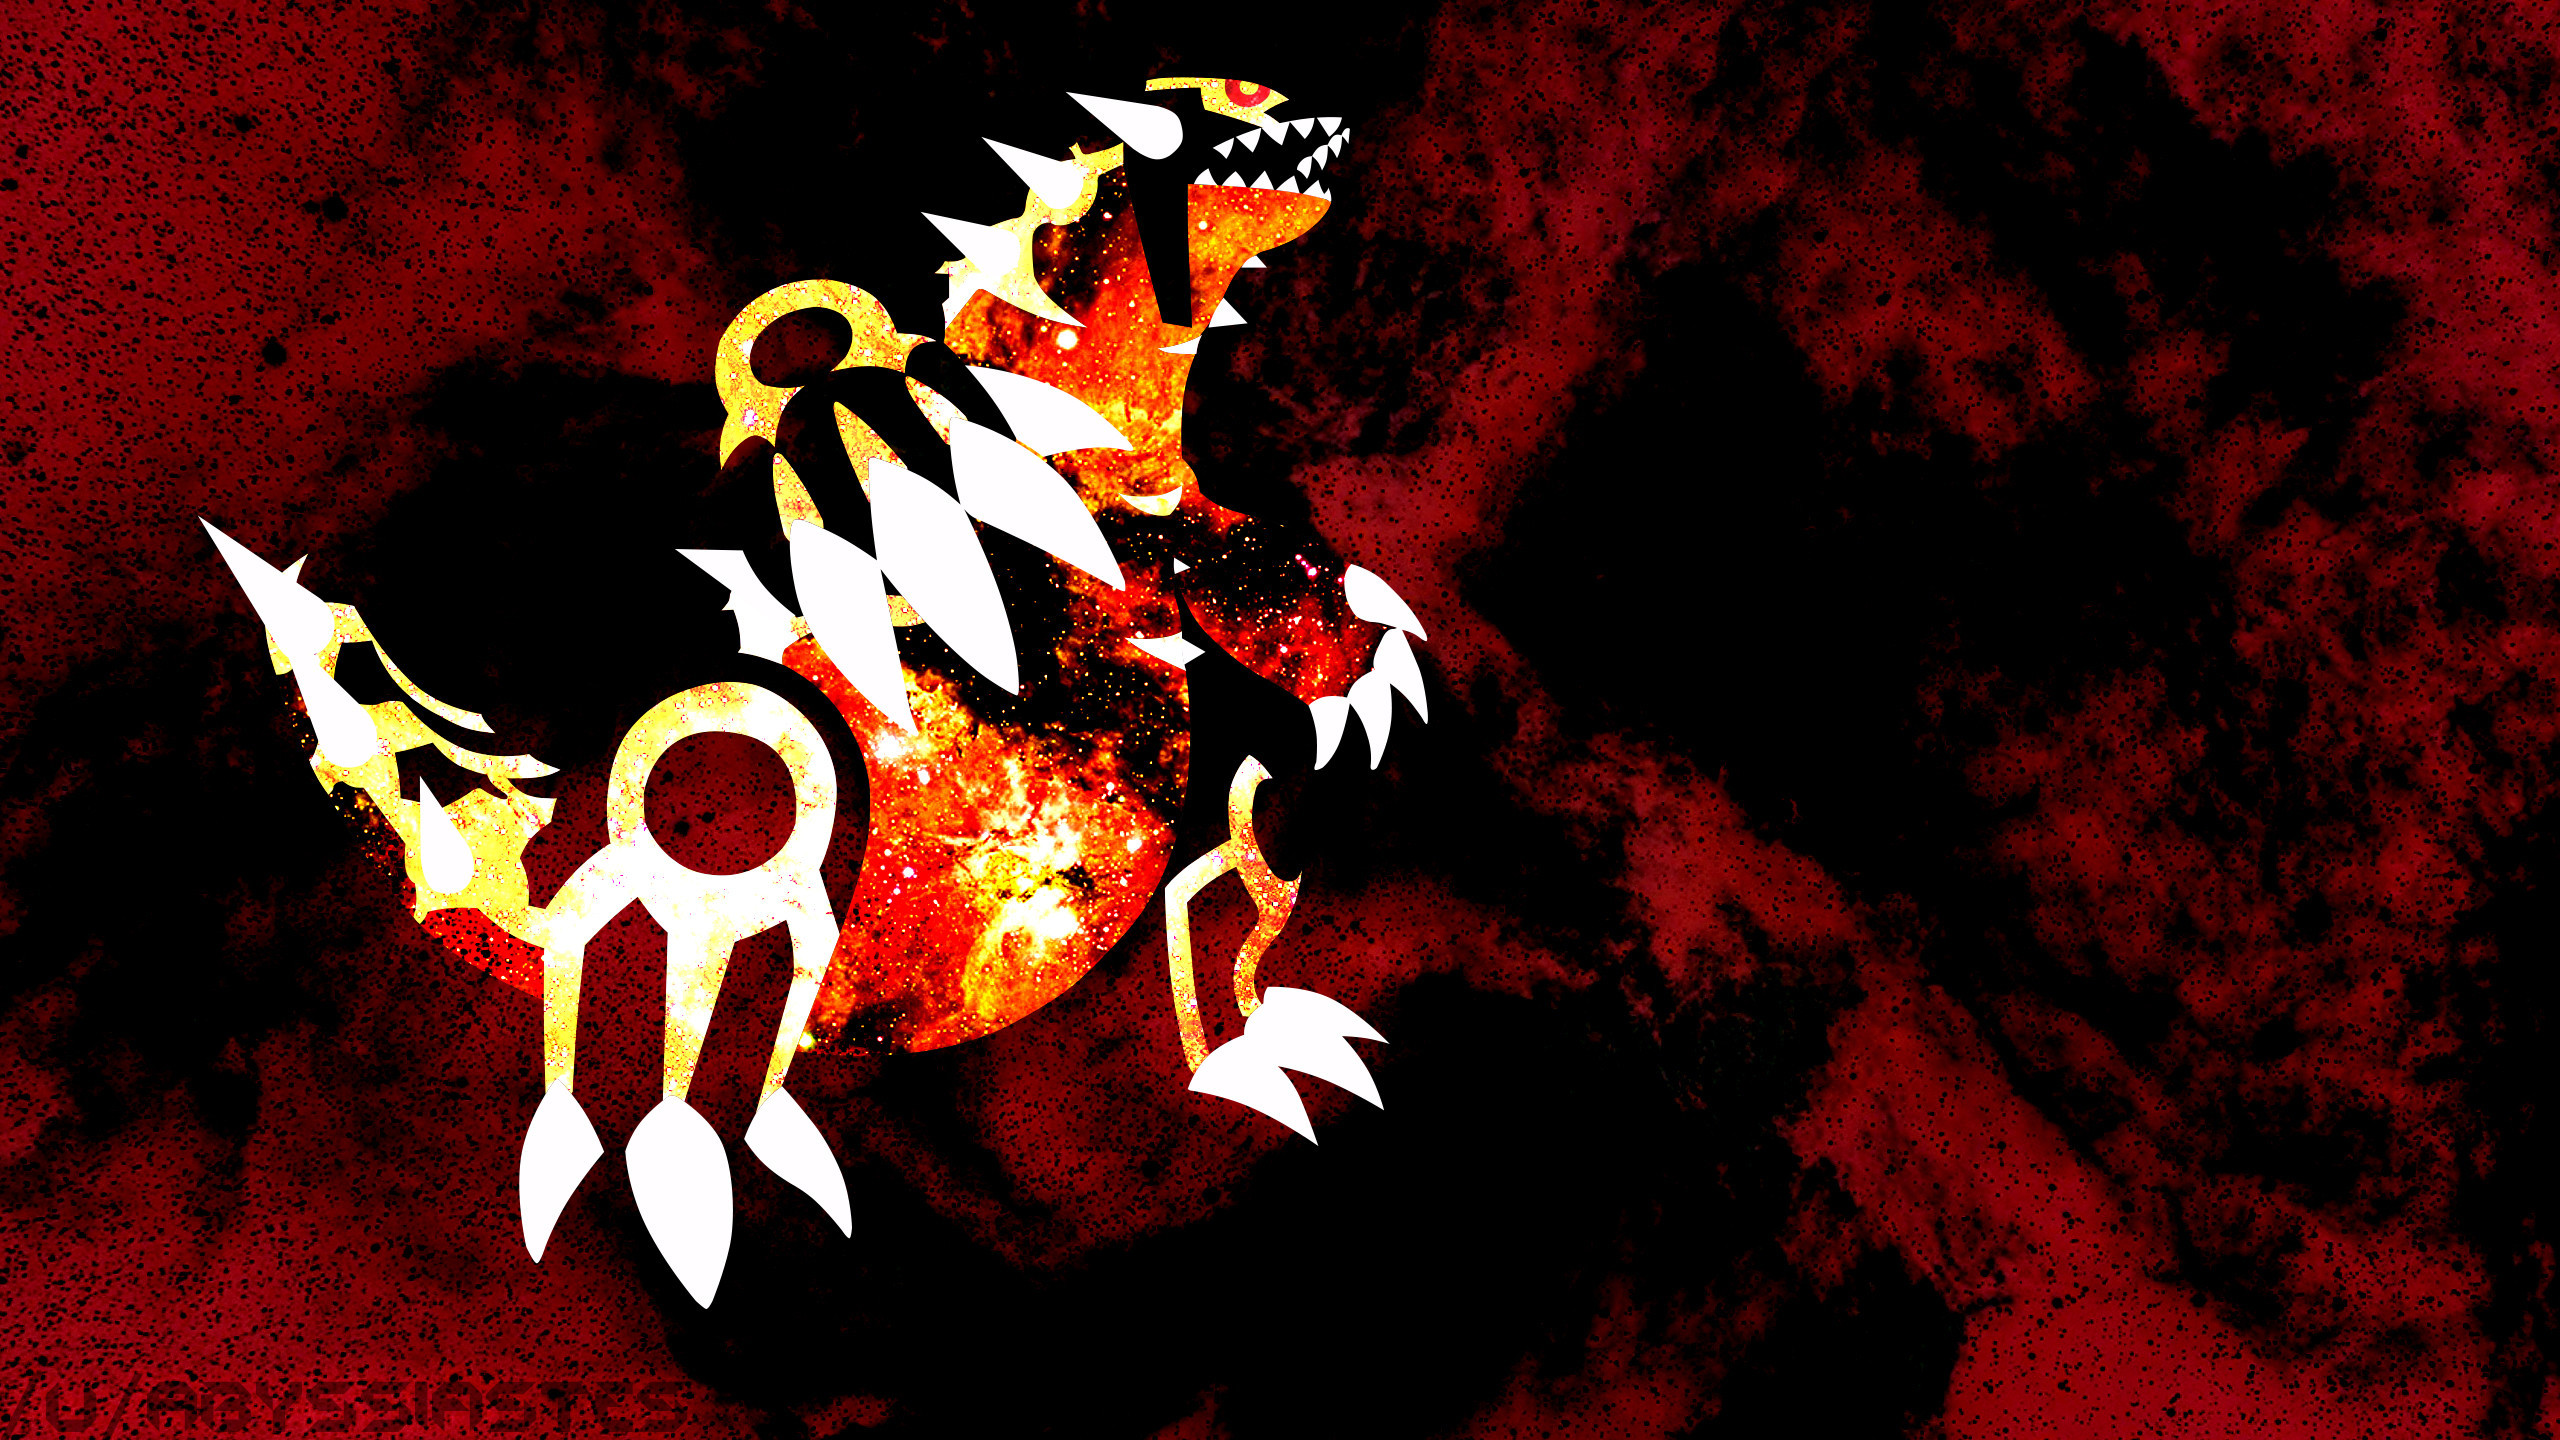 Primal Groudon Wallpaper The background pictures have